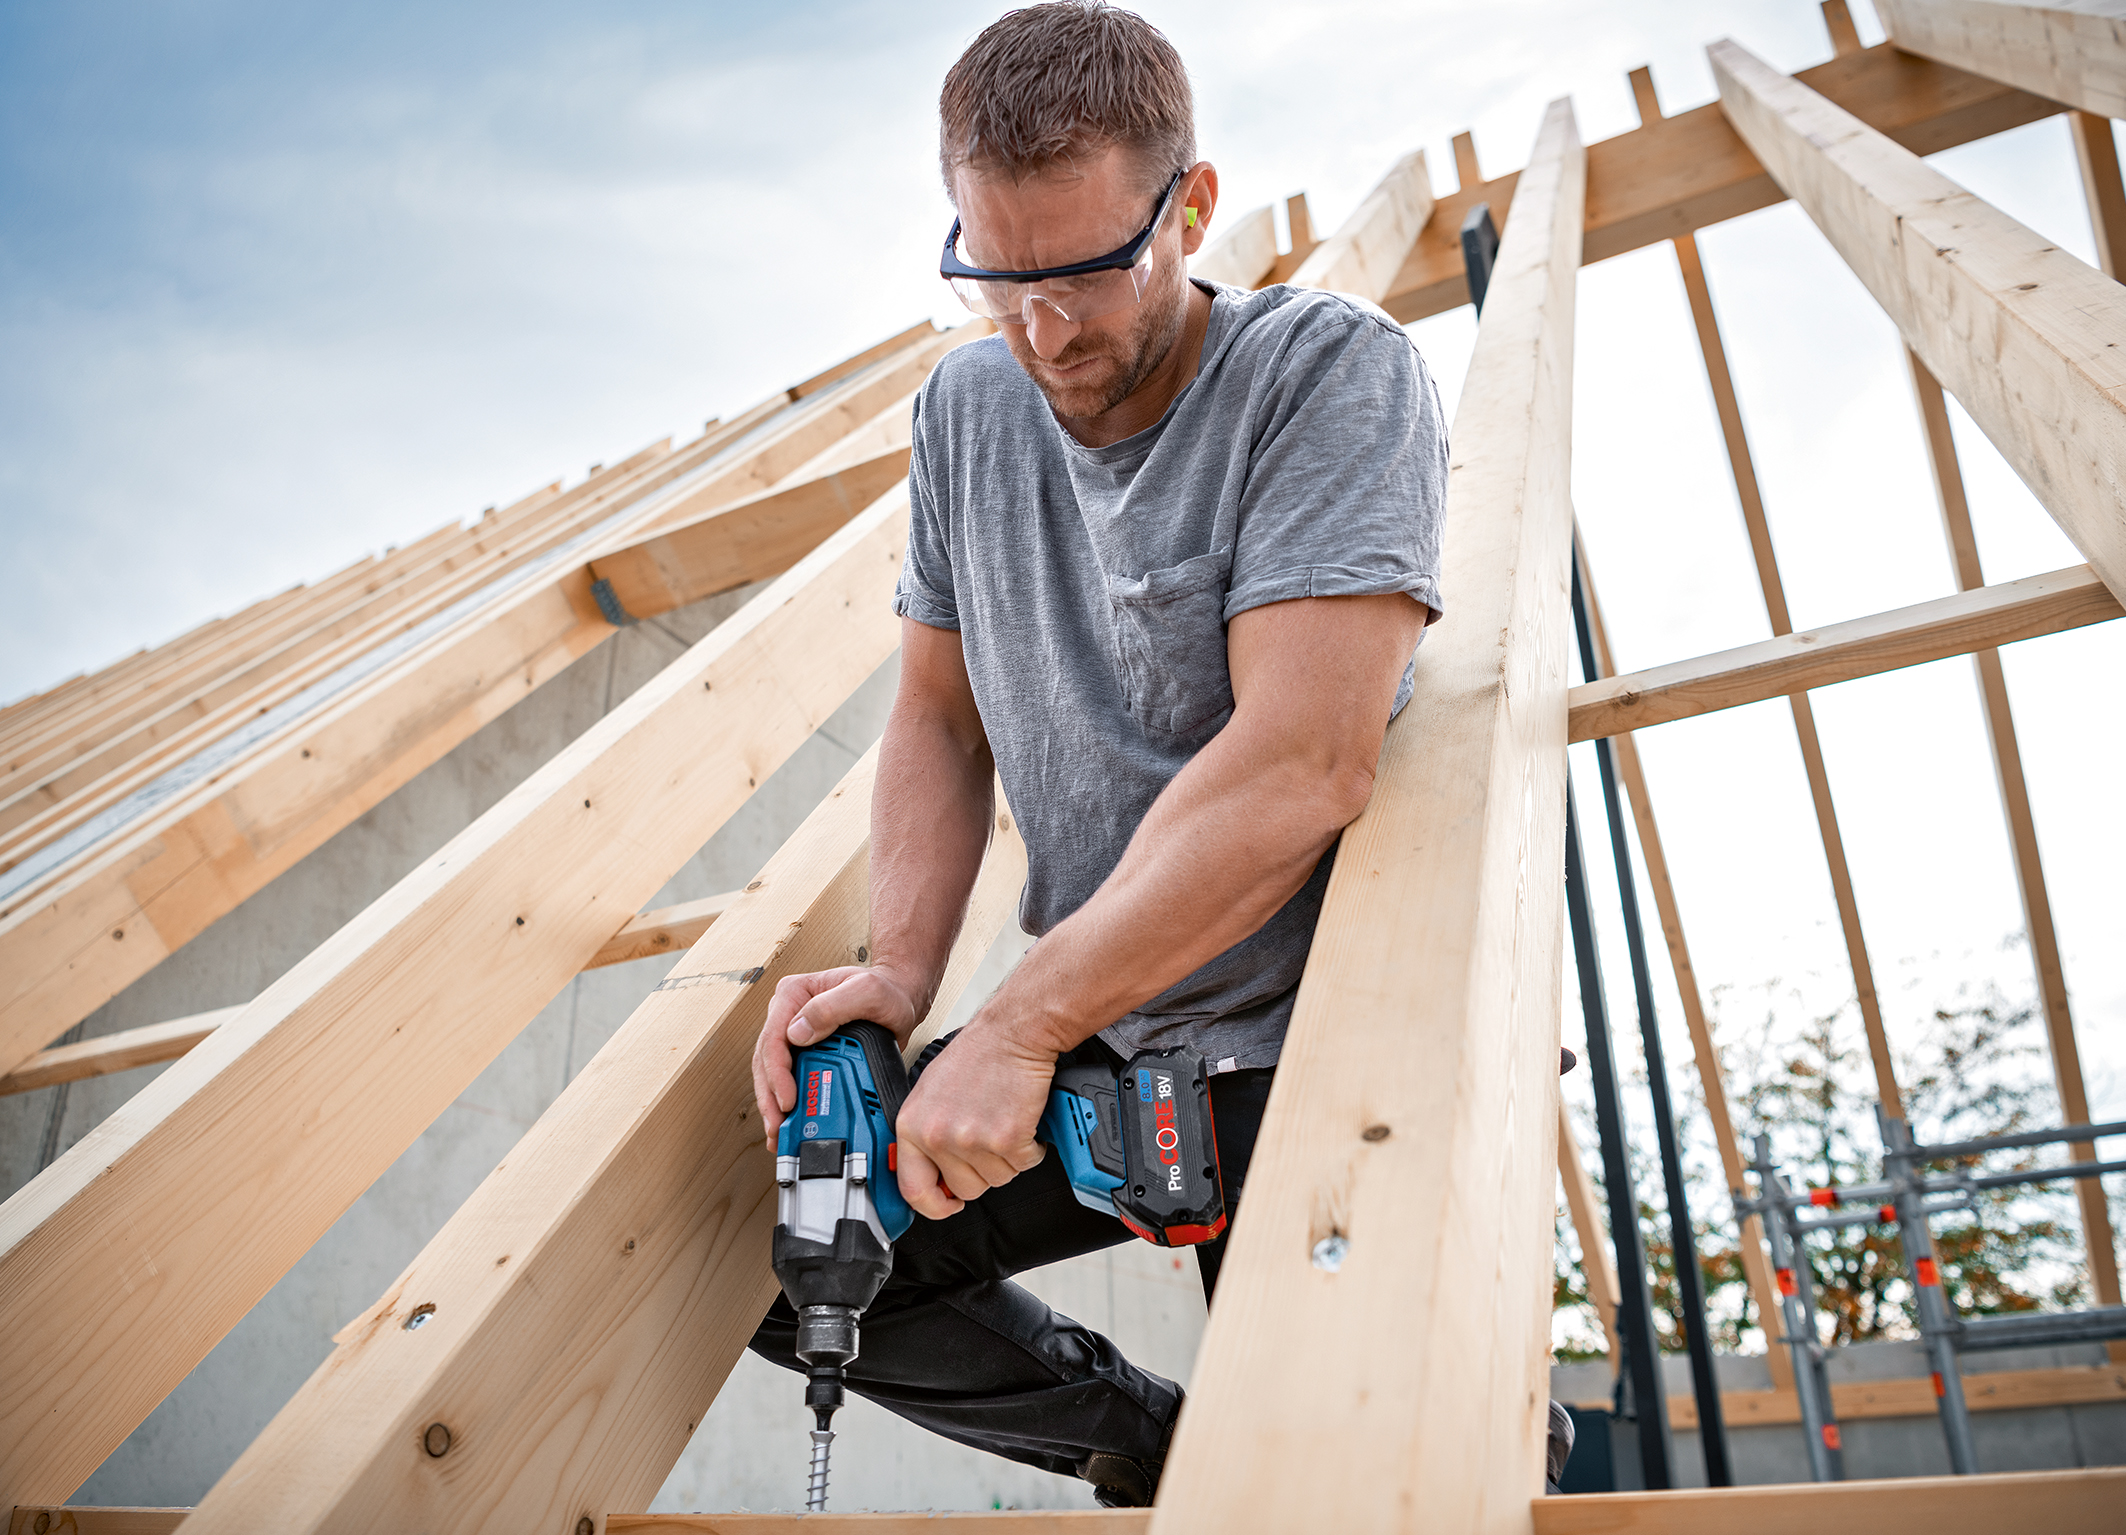 Added value through configurable wood mode: Biturbo impact wrenches from Bosch for pros